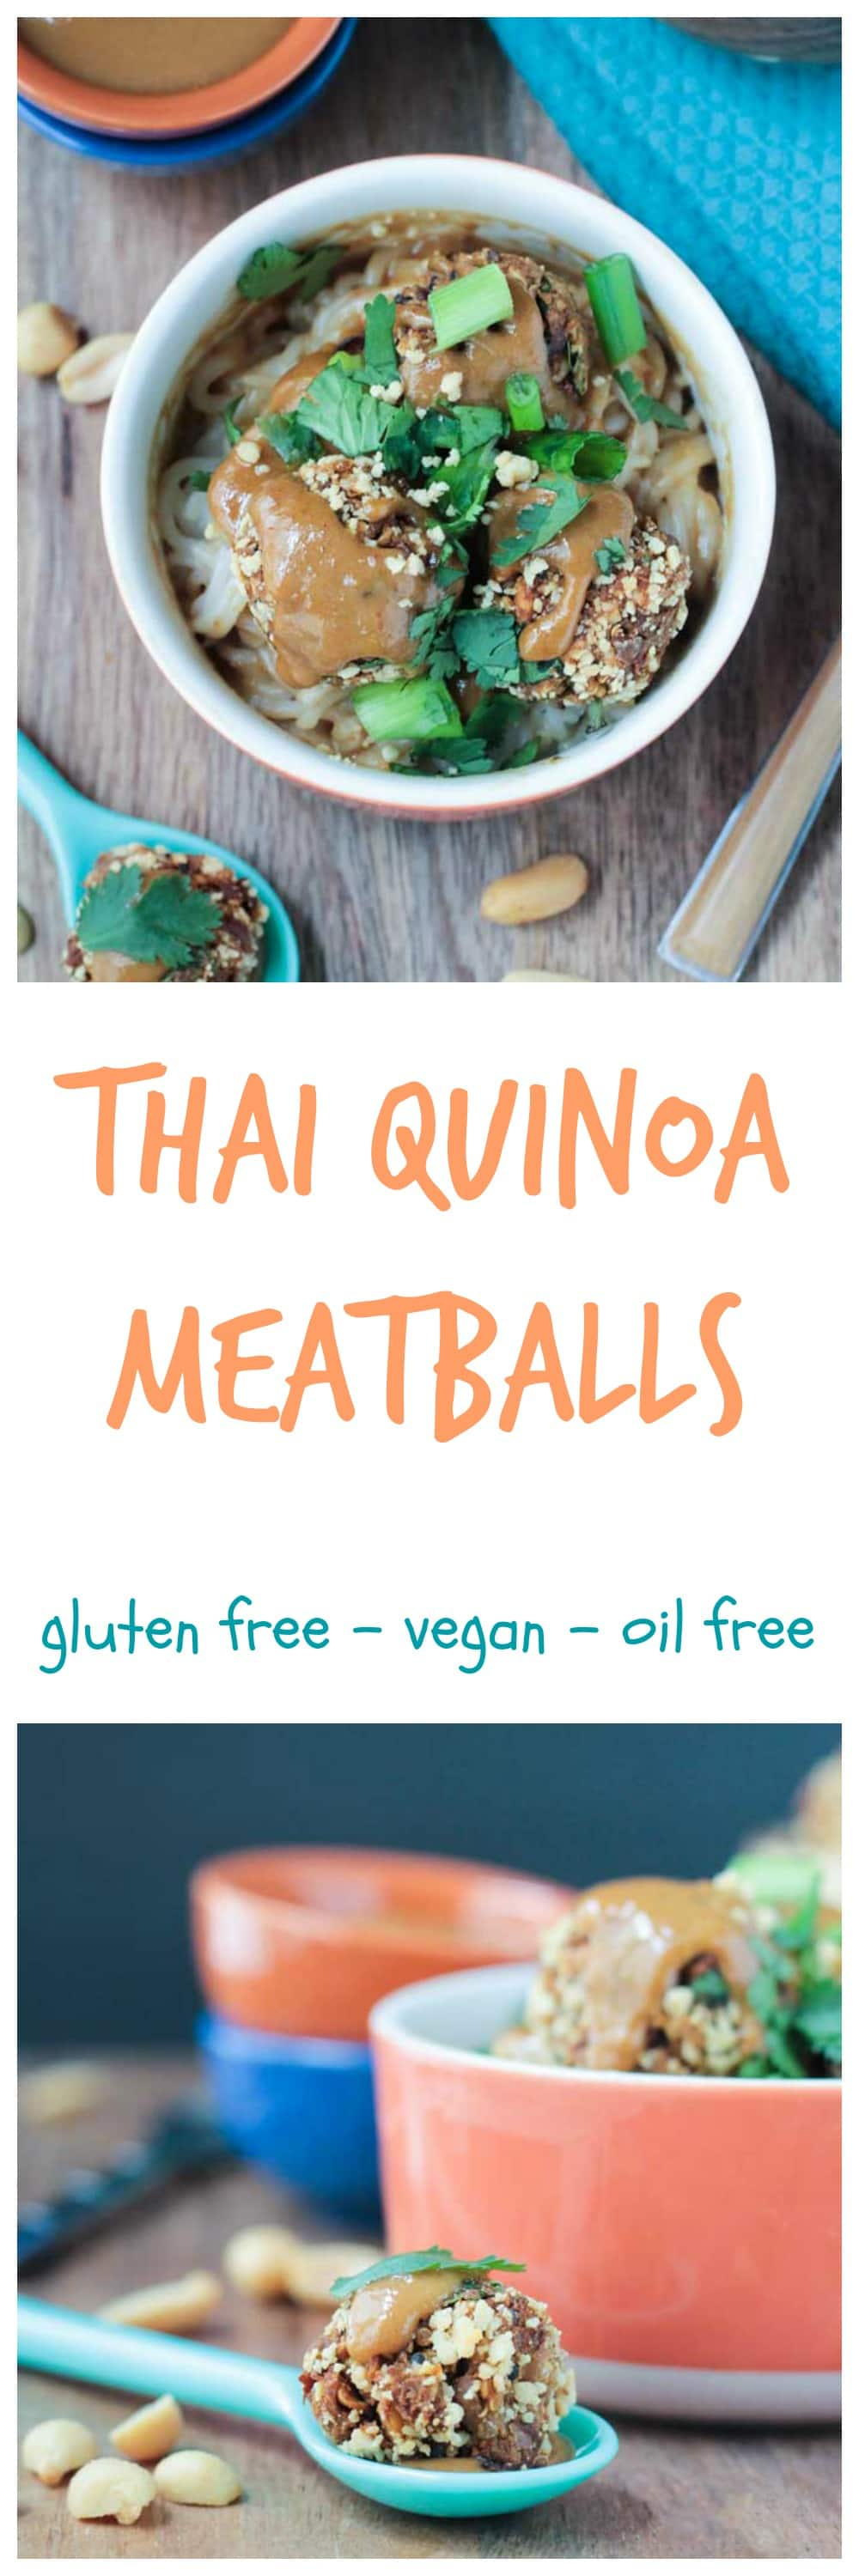 Thai Quinoa Meatballs recipe from Minimalist Baker's Everyday Cooking. So easy and so yummy!!  Vegan, gluten free, 10 ingredients or less. This book was designed for the busy home cook! #vegan #minimalistbaker #vegetarian #veggie